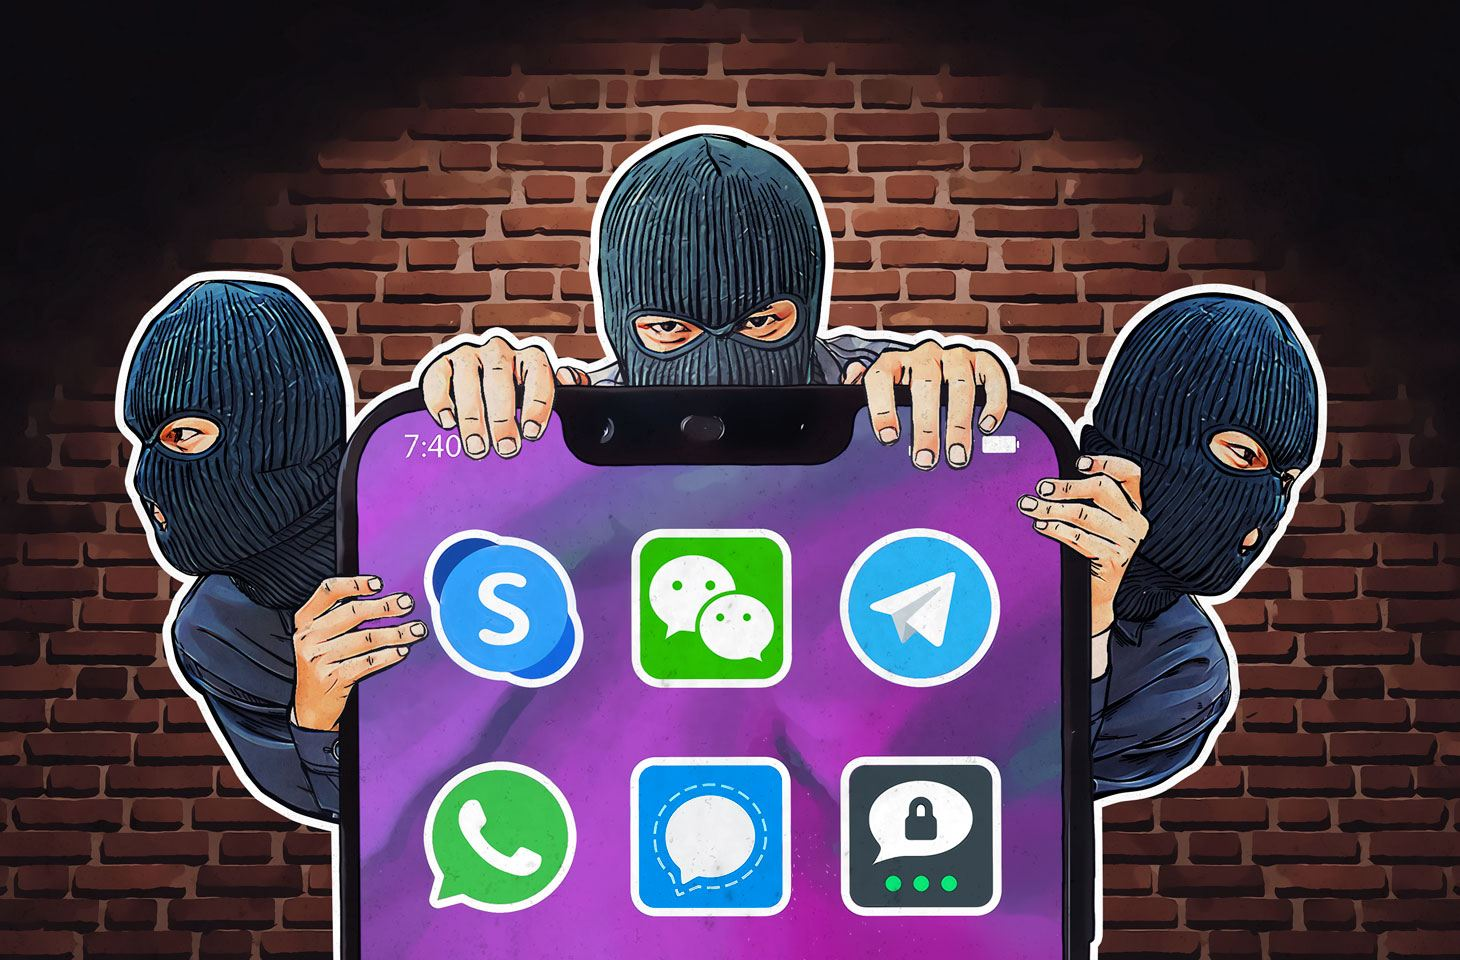 FinSpy/FinFisher is legal spyware for Android, iOS, Windows, macOS, and Linux